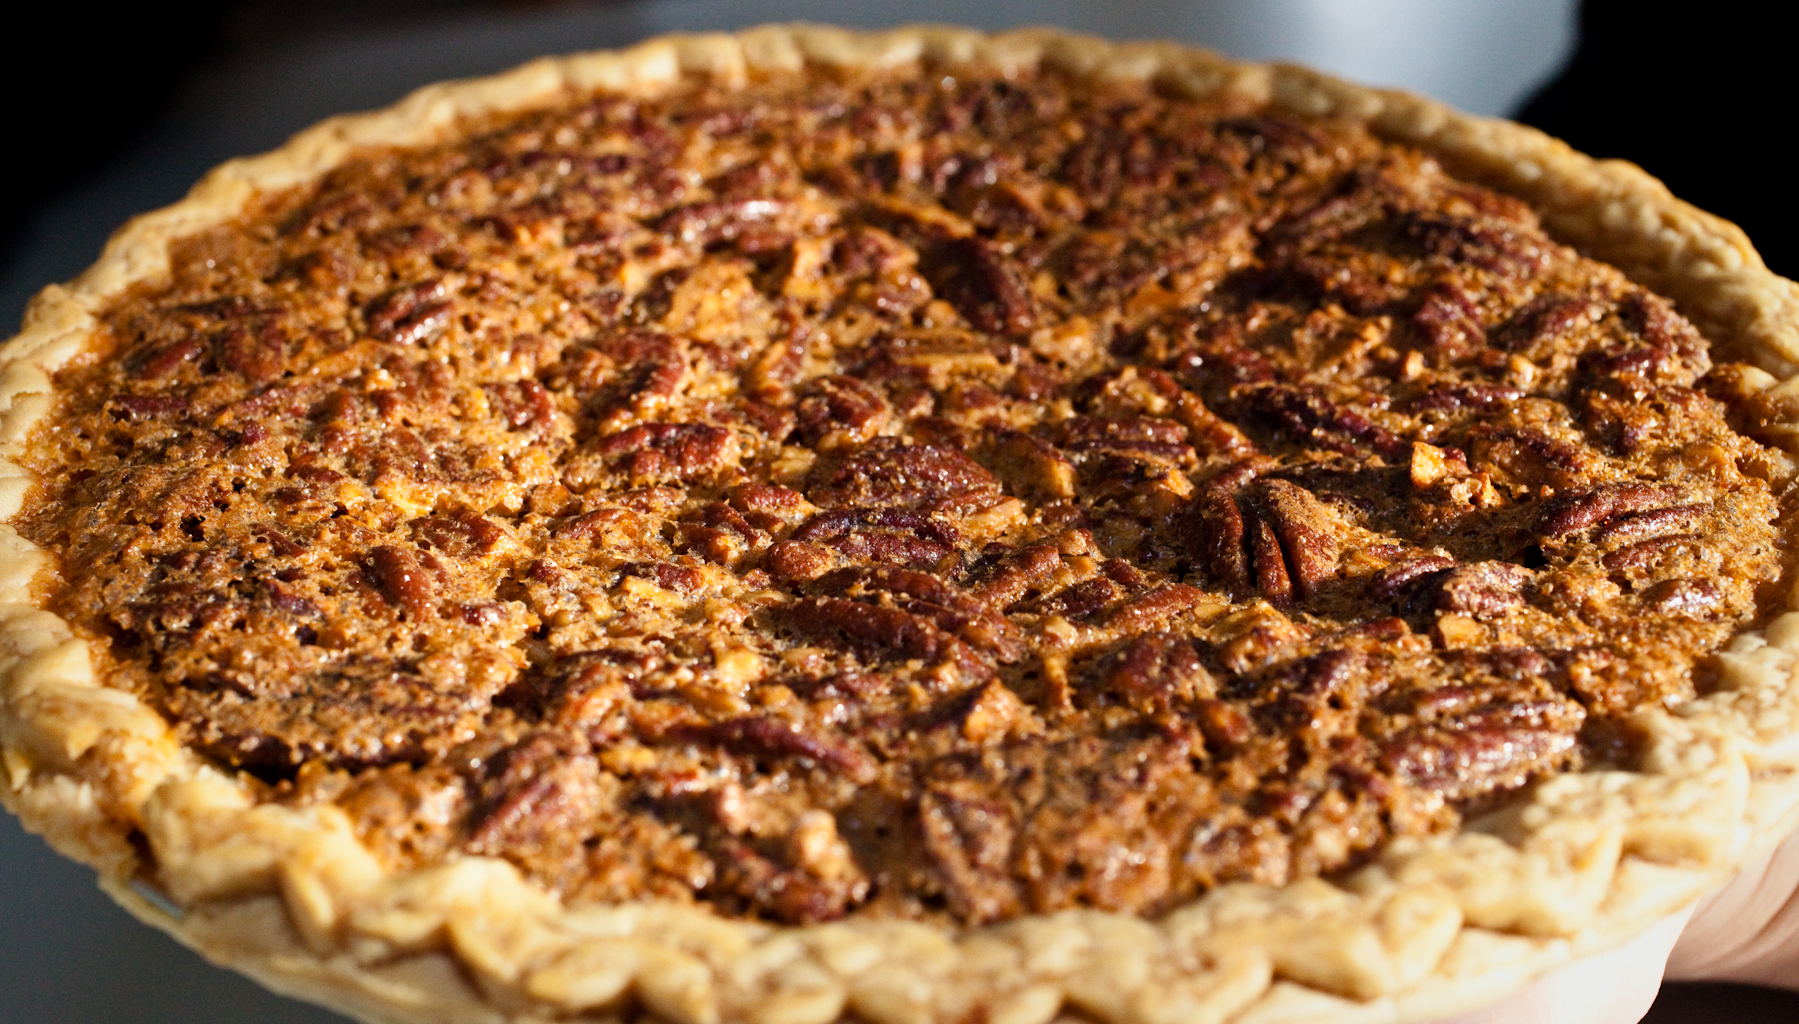 Pecan Pie - Bing images